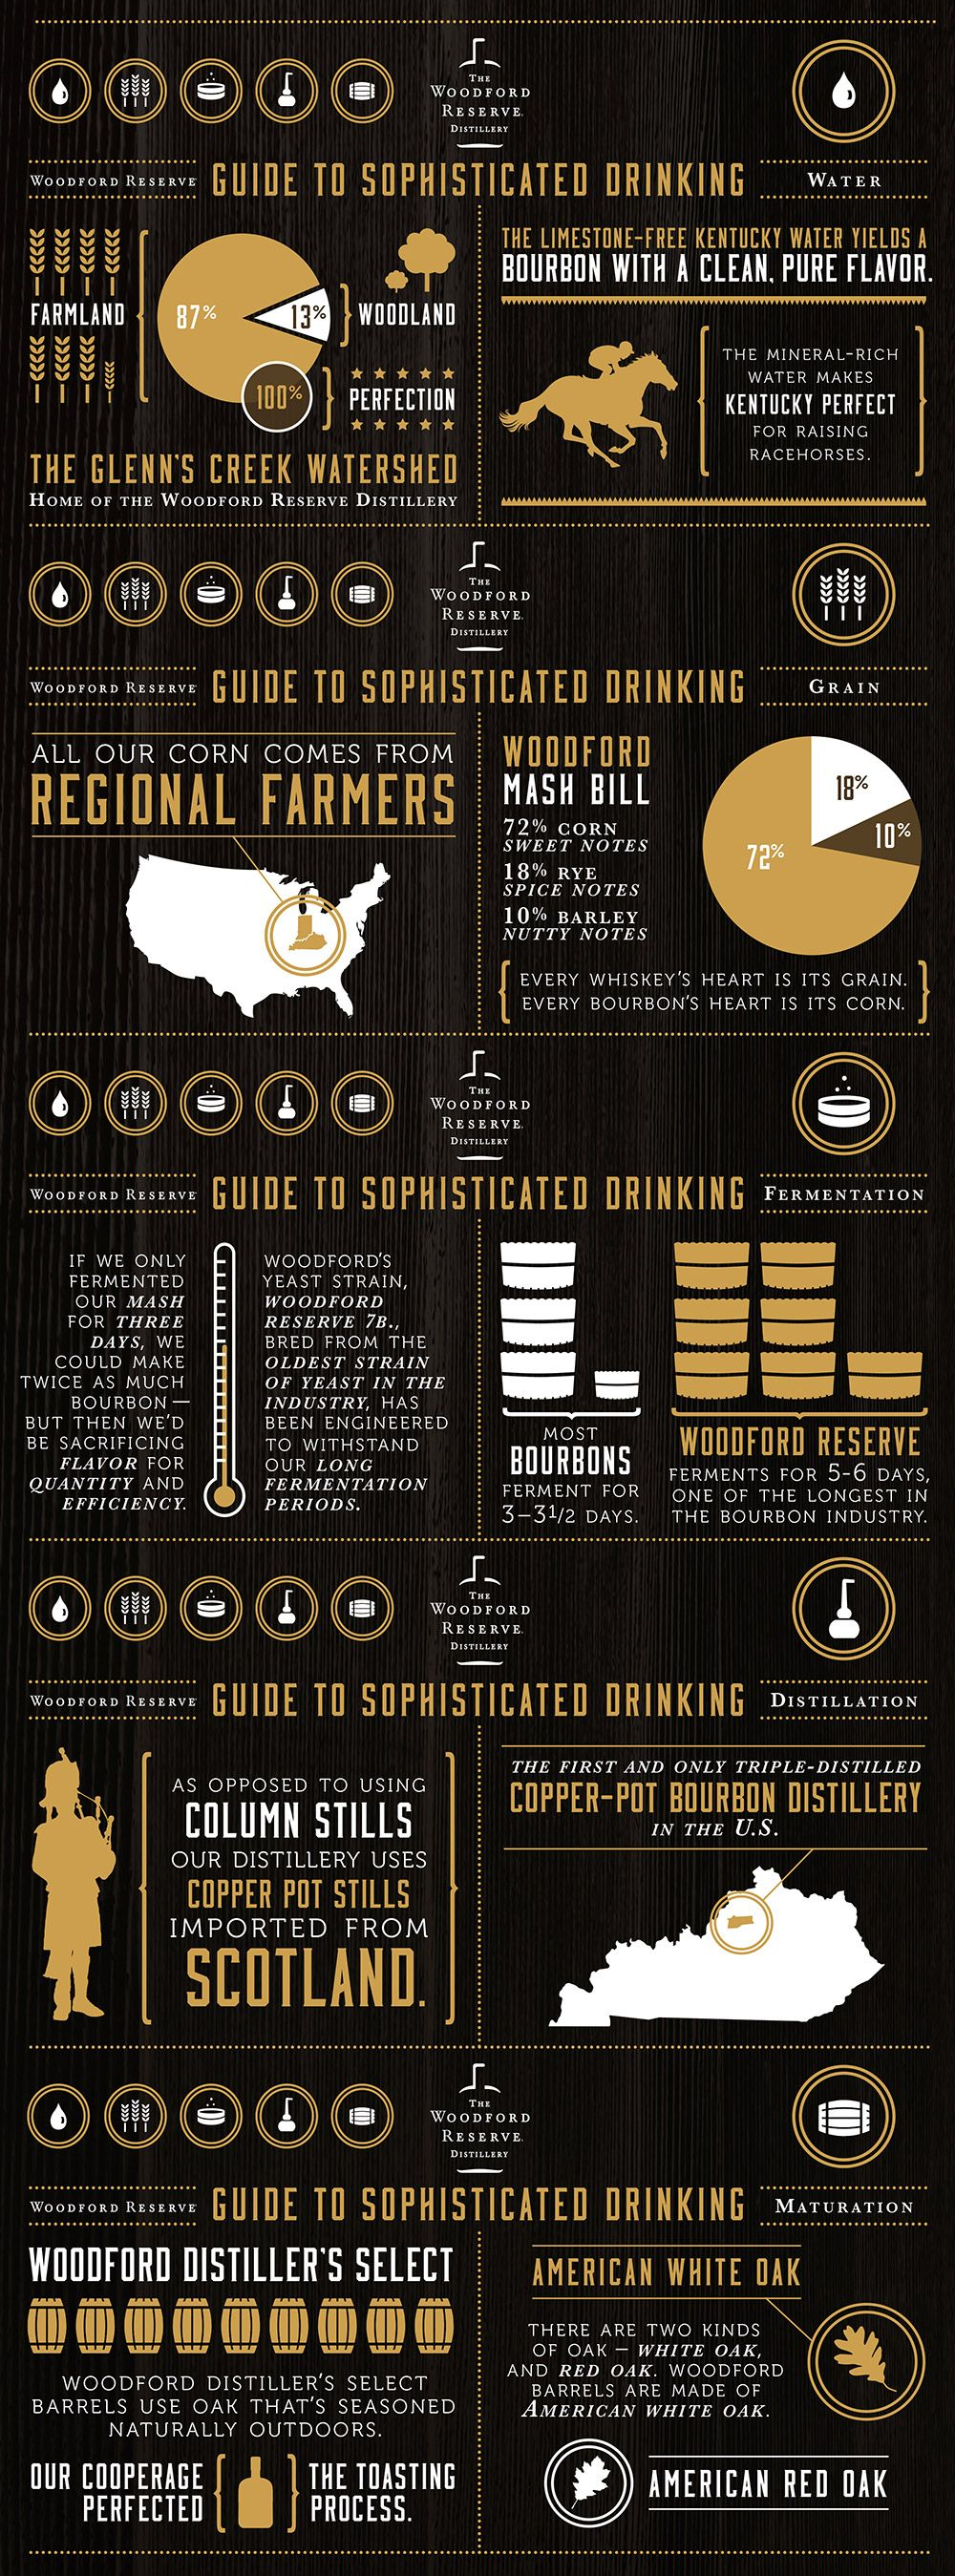 woodford_reserve_infographic.jpg (1000×2698)